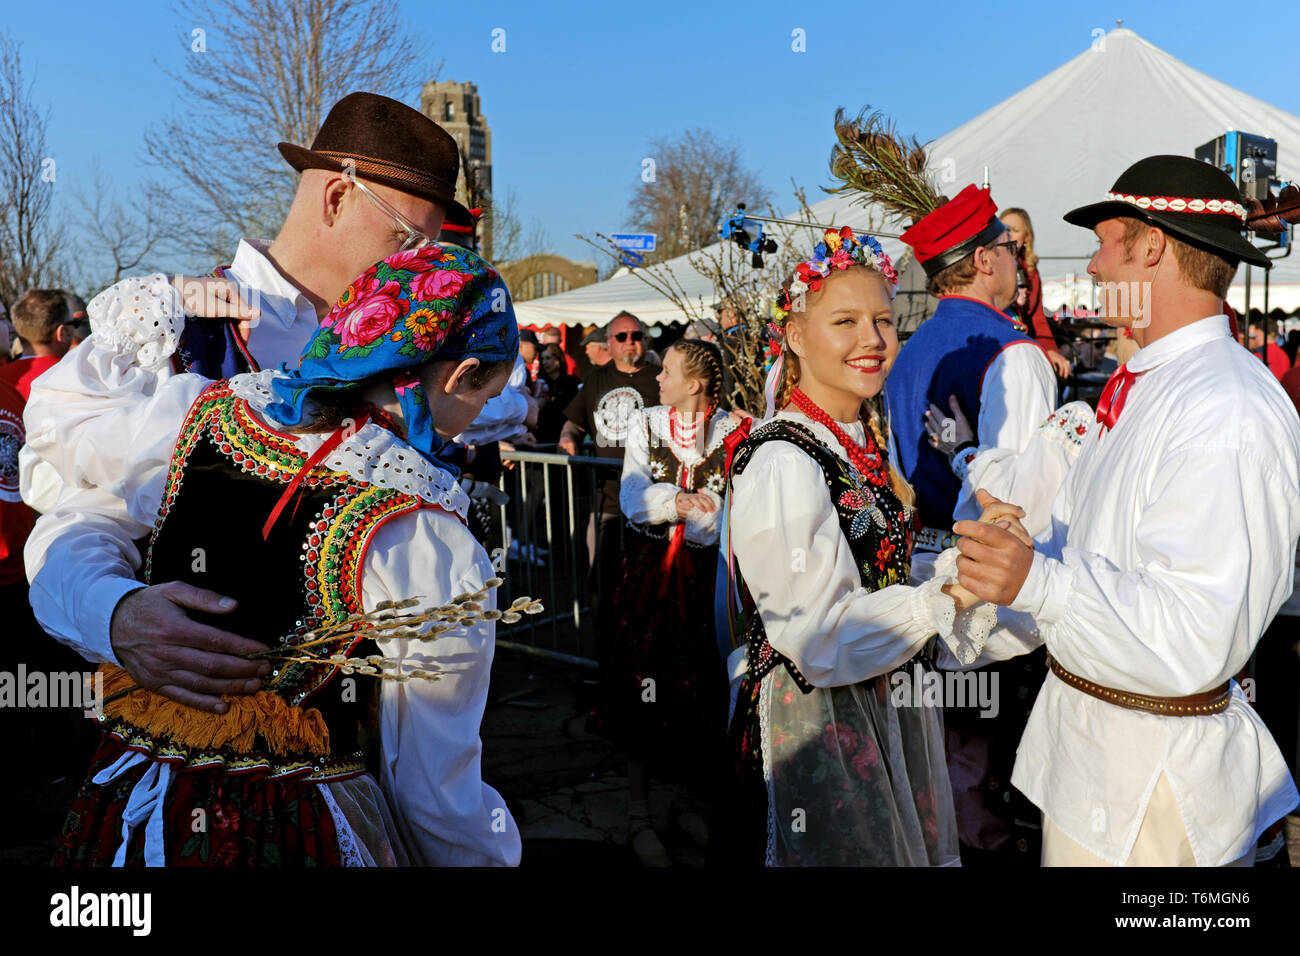 Couples dressed in traditional Polish outfits dance during the 2019 Dyngus Day activities in Buffalo, New York, USA. - Stock Image